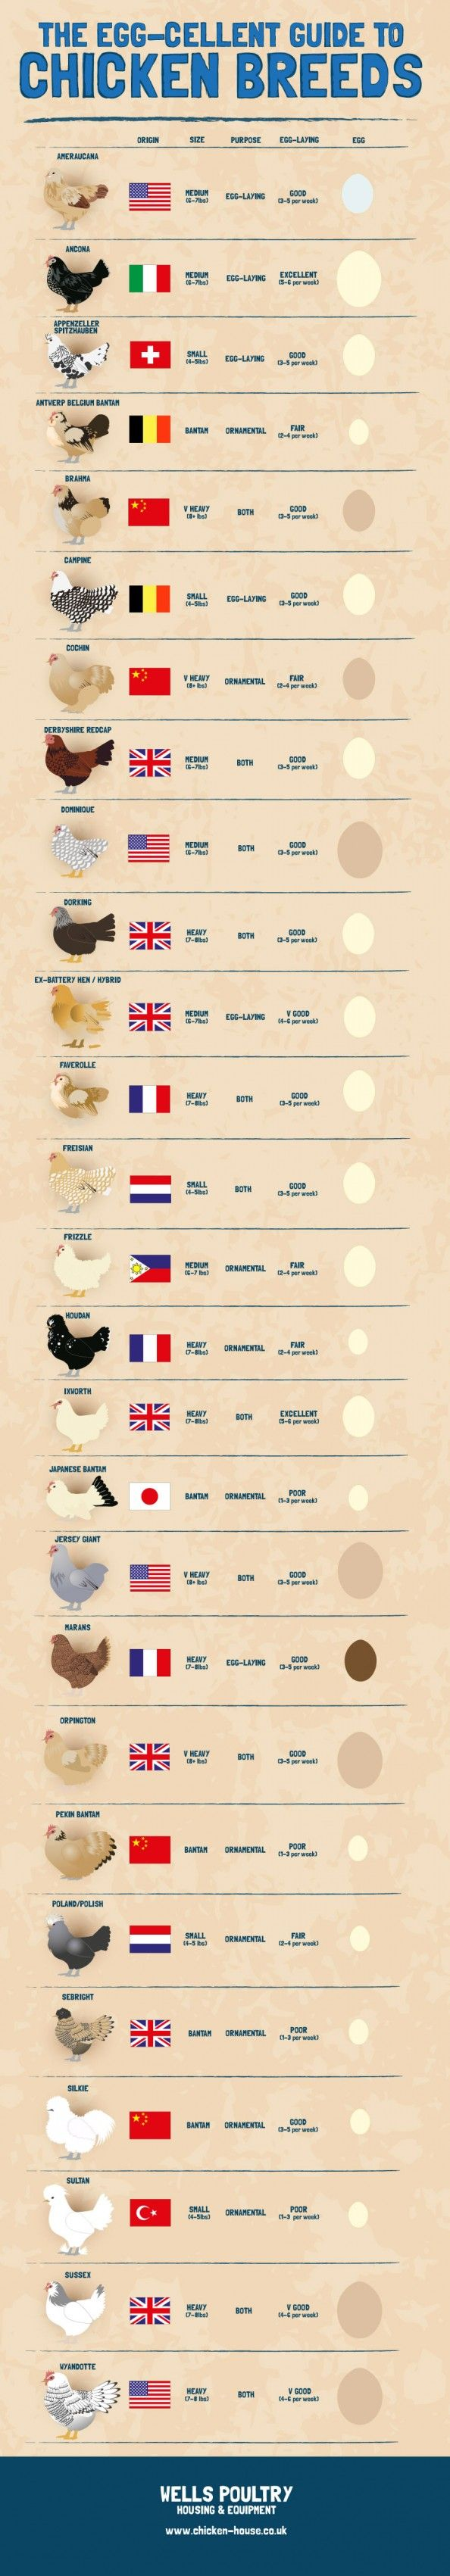 The Egg-Cellent Guide to Chicken Breeds Infographic